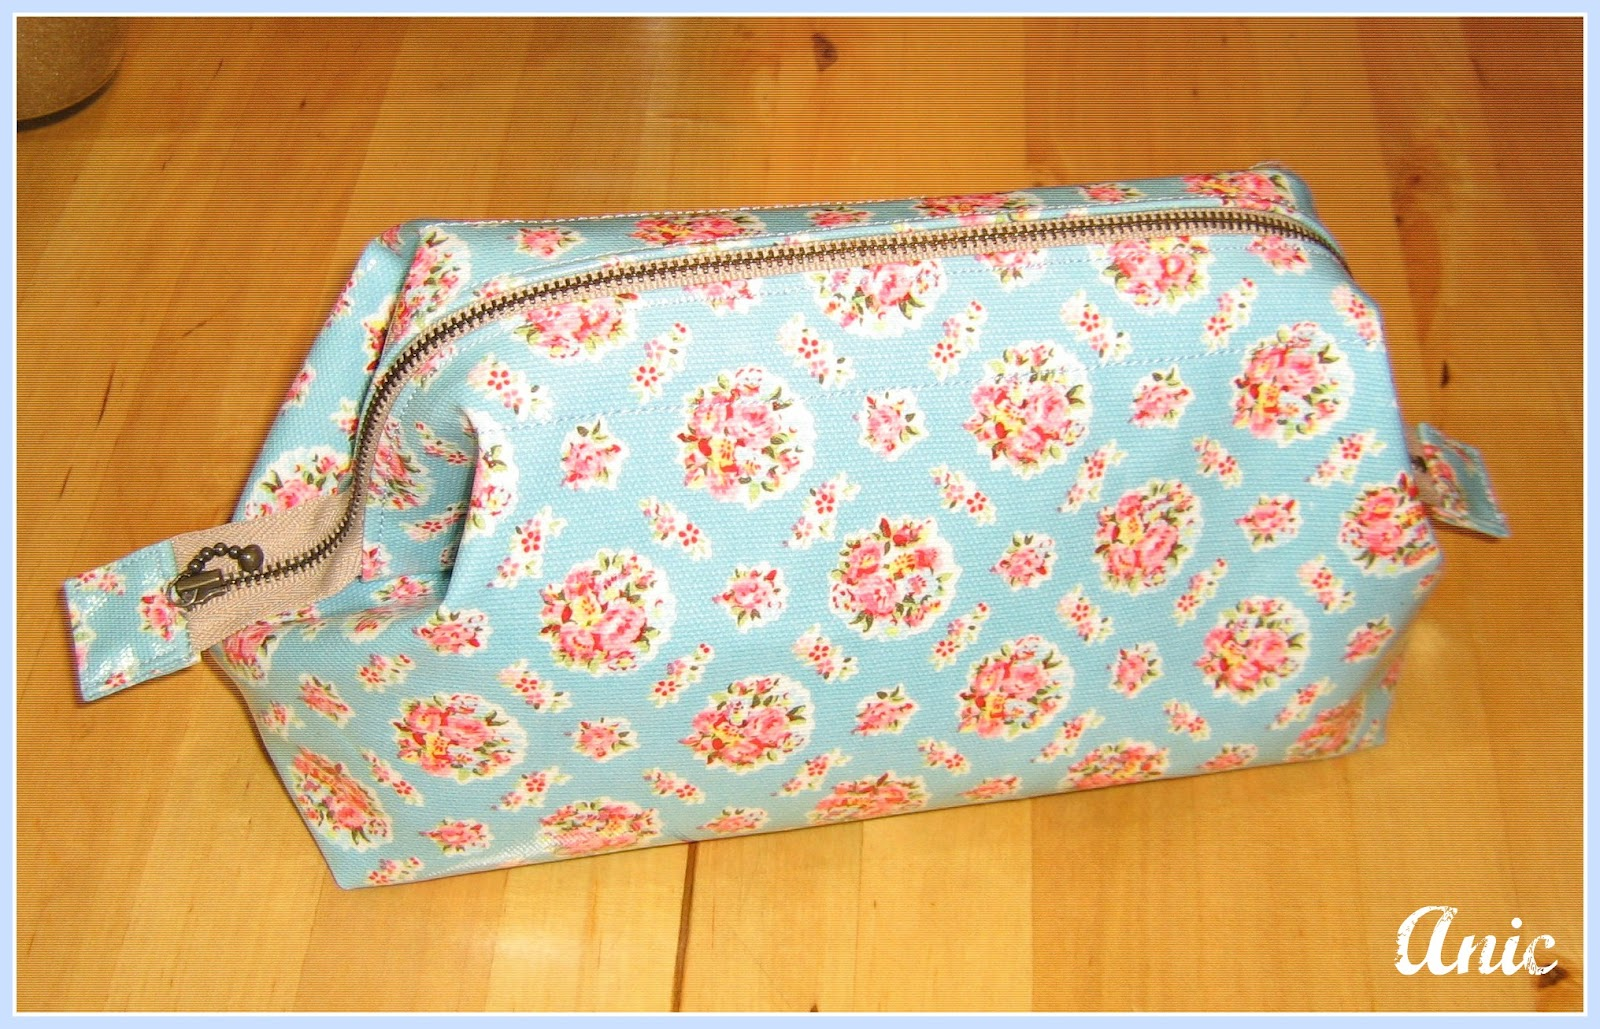 Anything handmade....: Bag Project 12 - Waterproof Fabric Doctor ...